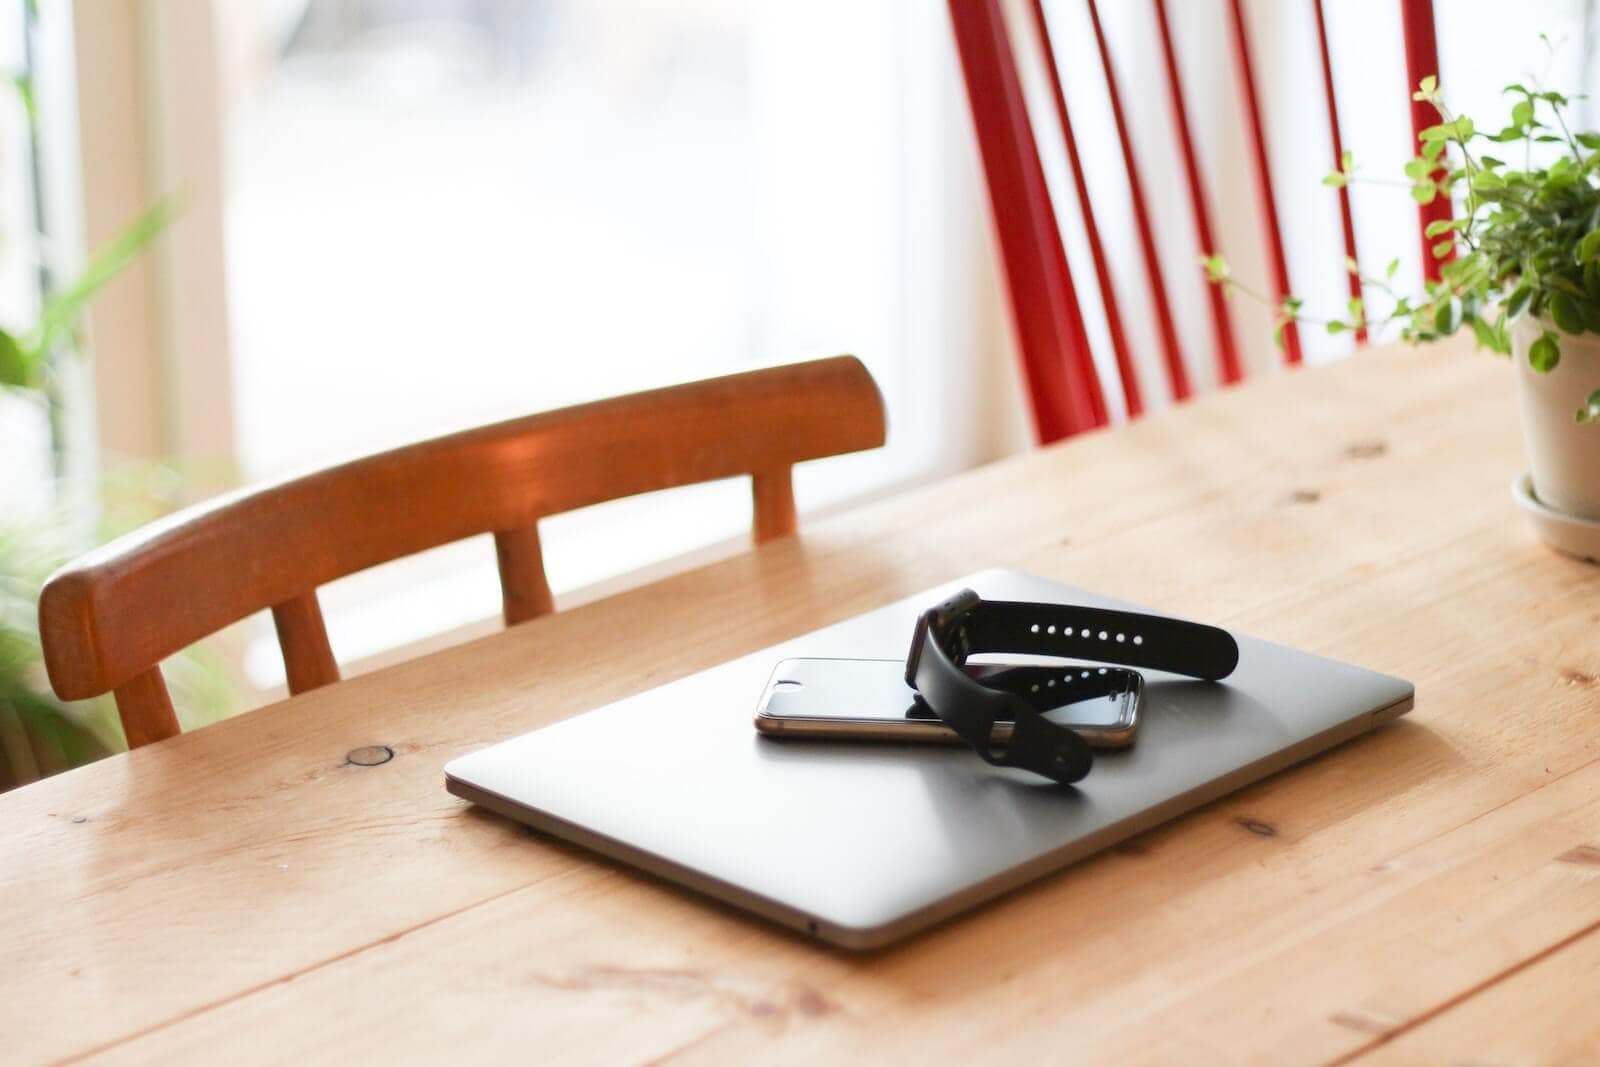 working from home at a kitchen table